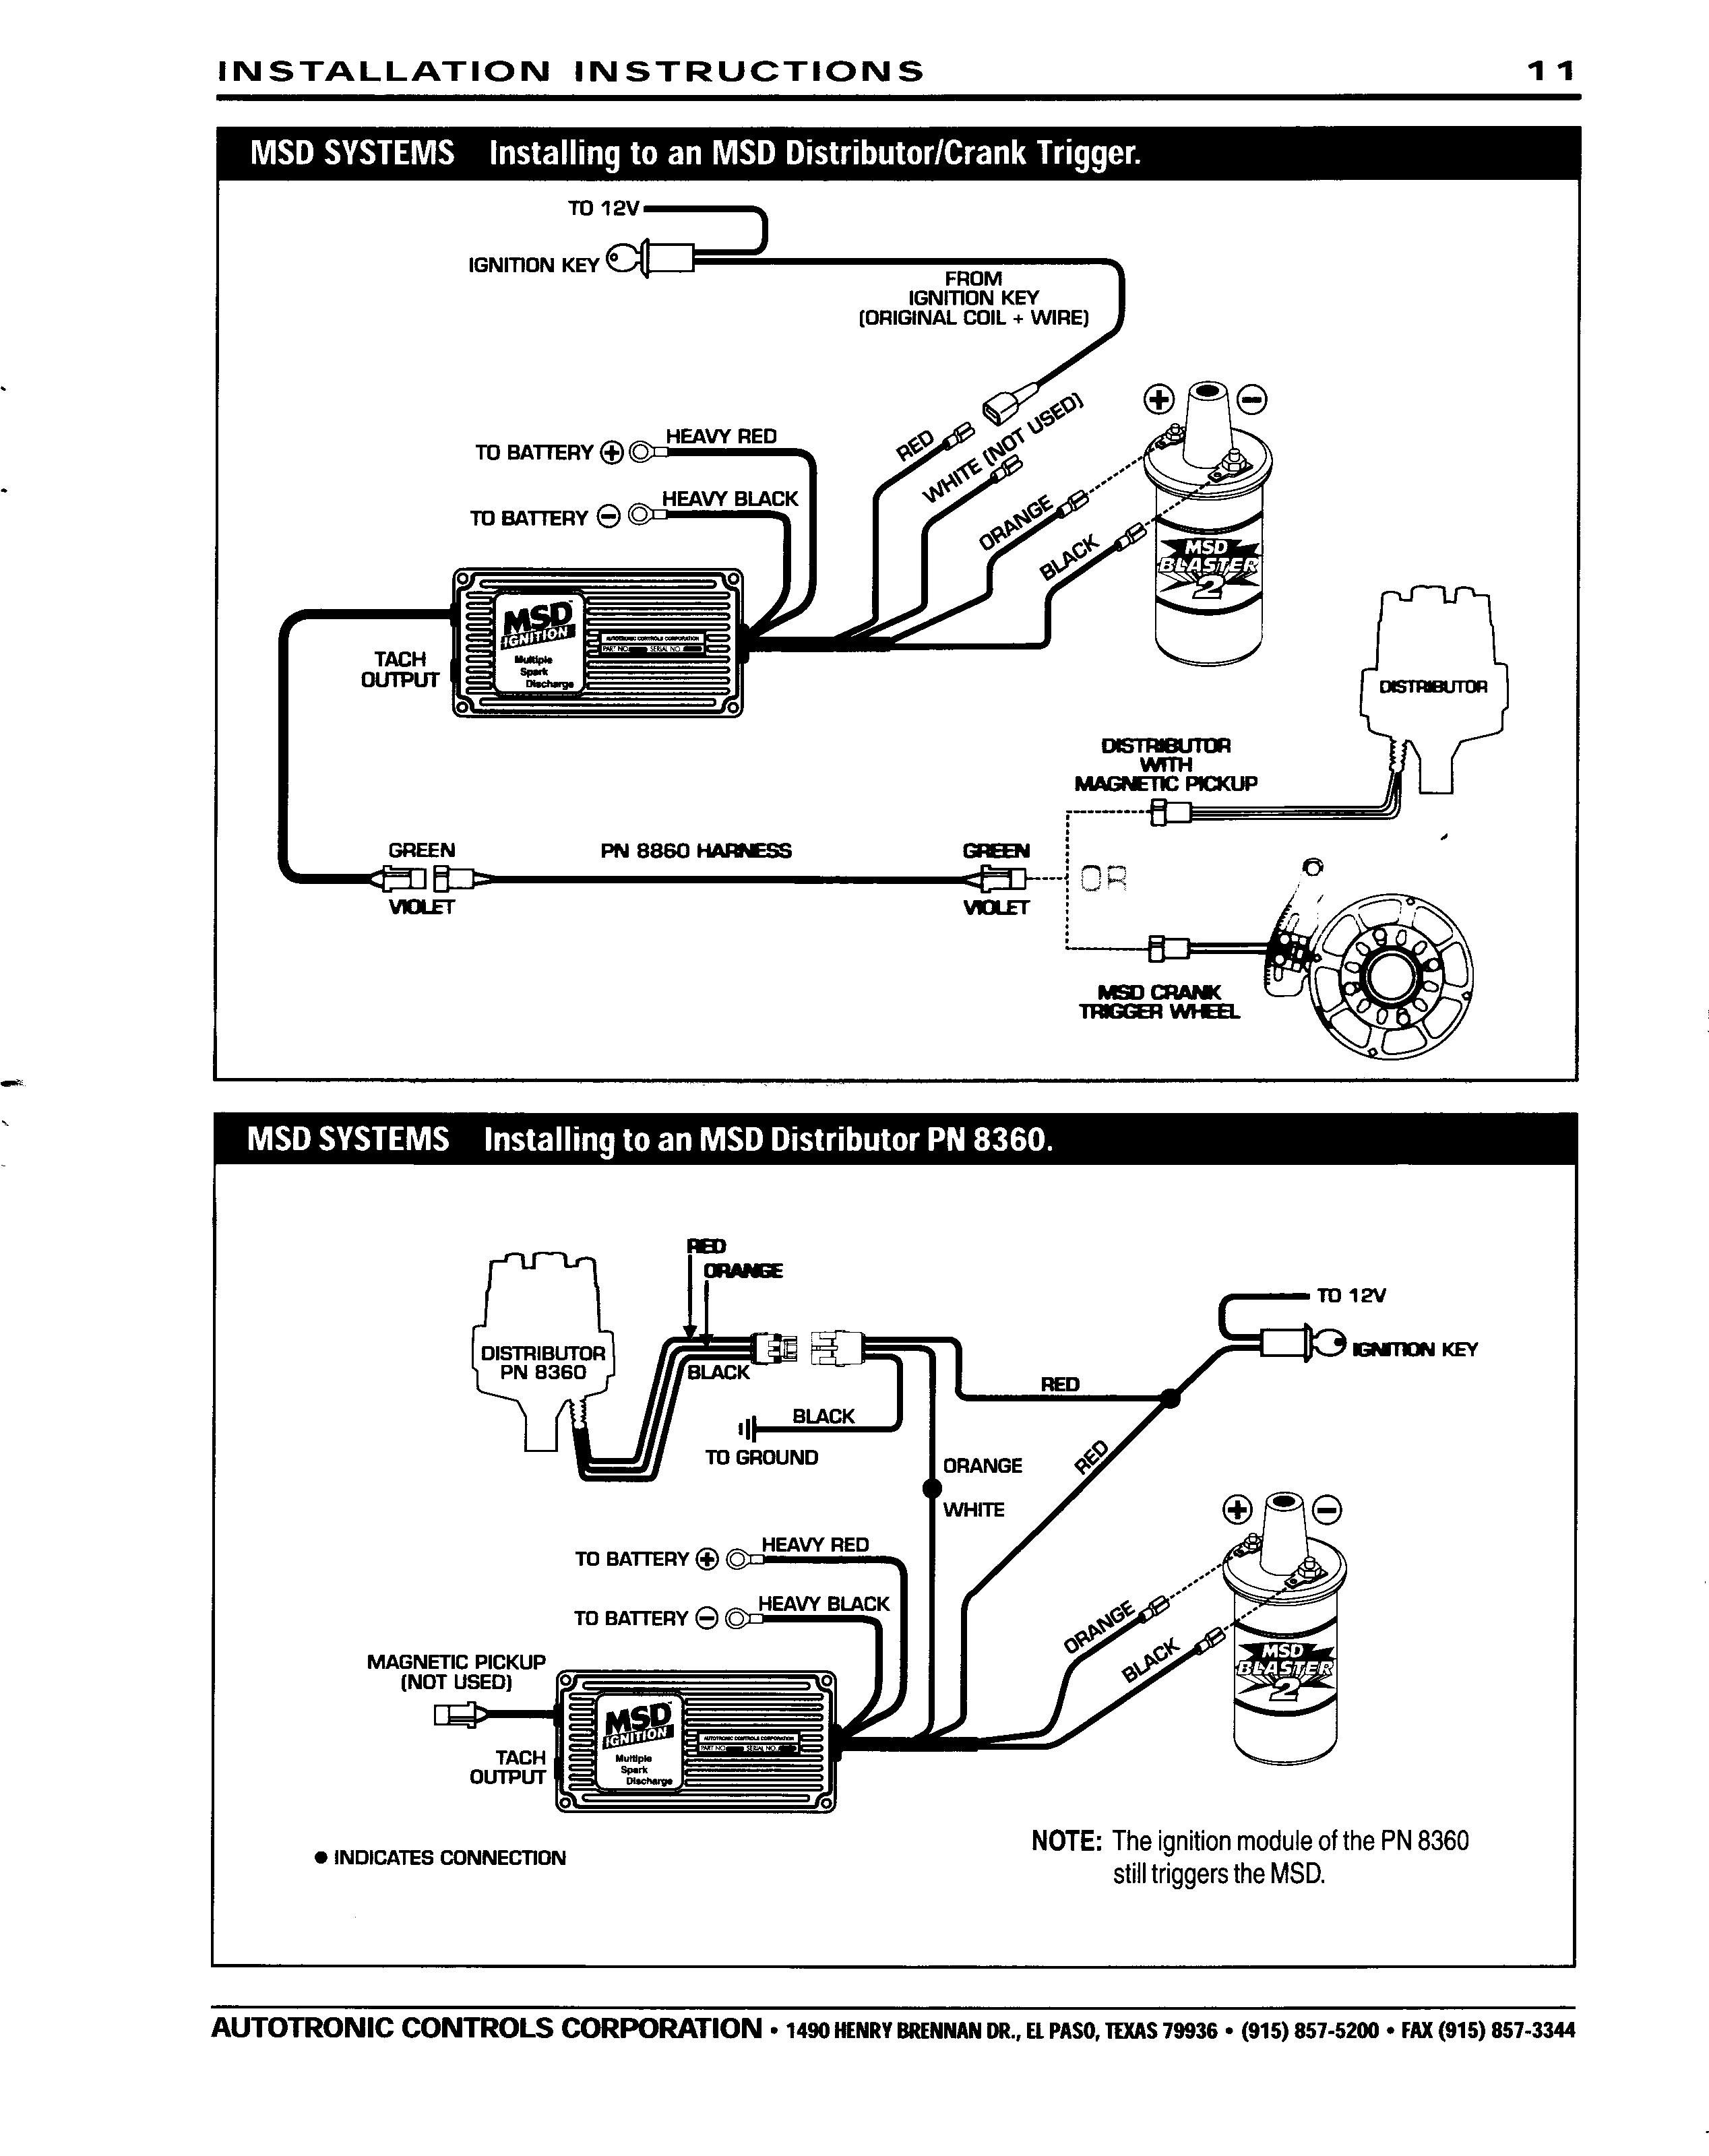 Mallory Unilite Wiring Diagram Pics - Wiring Diagram Work on